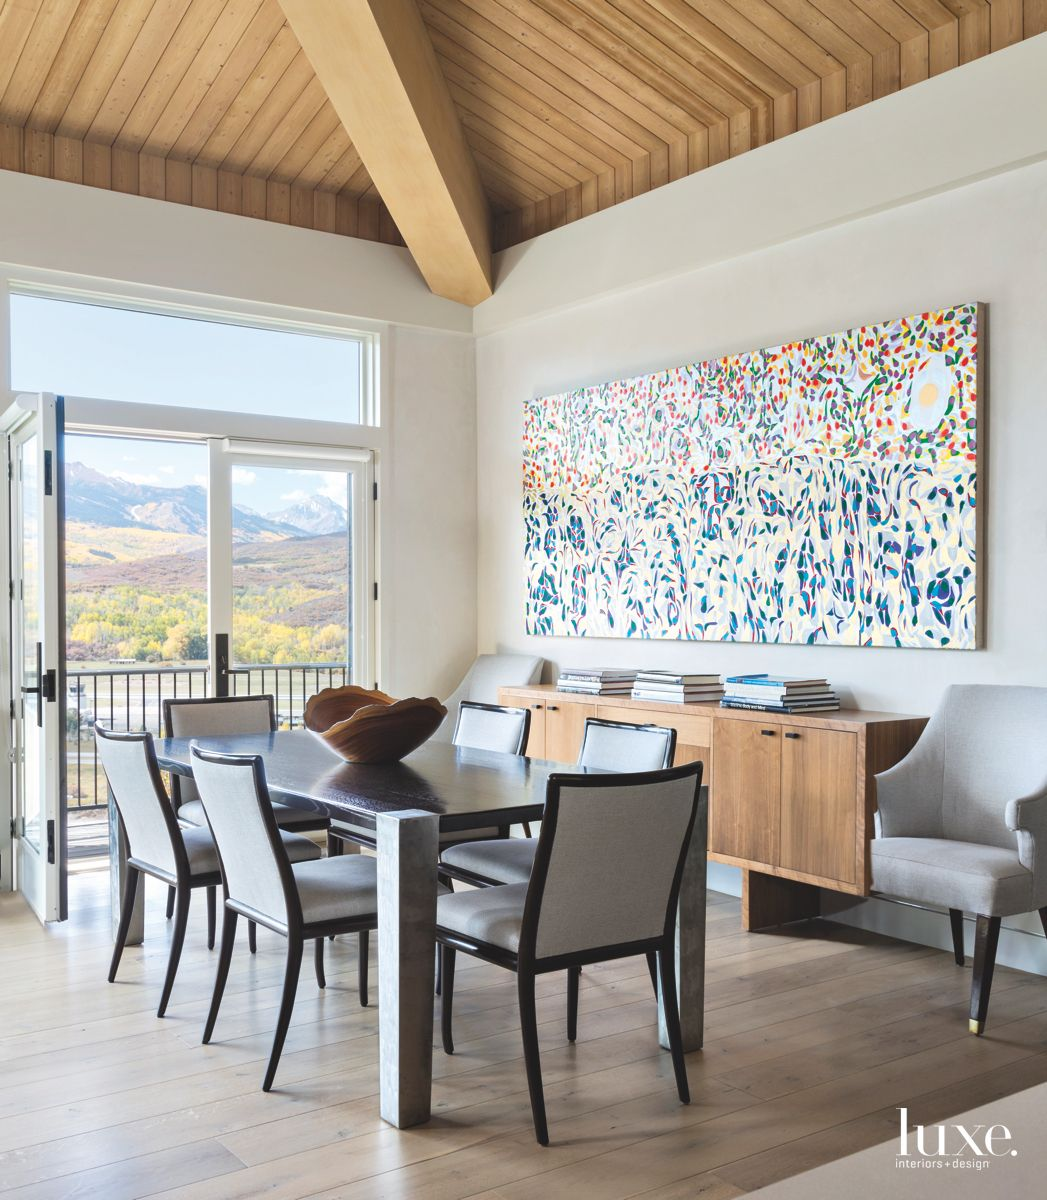 Multi-Colored Artwork Dining Room with Modern Chairs and Vaulted Ceiling